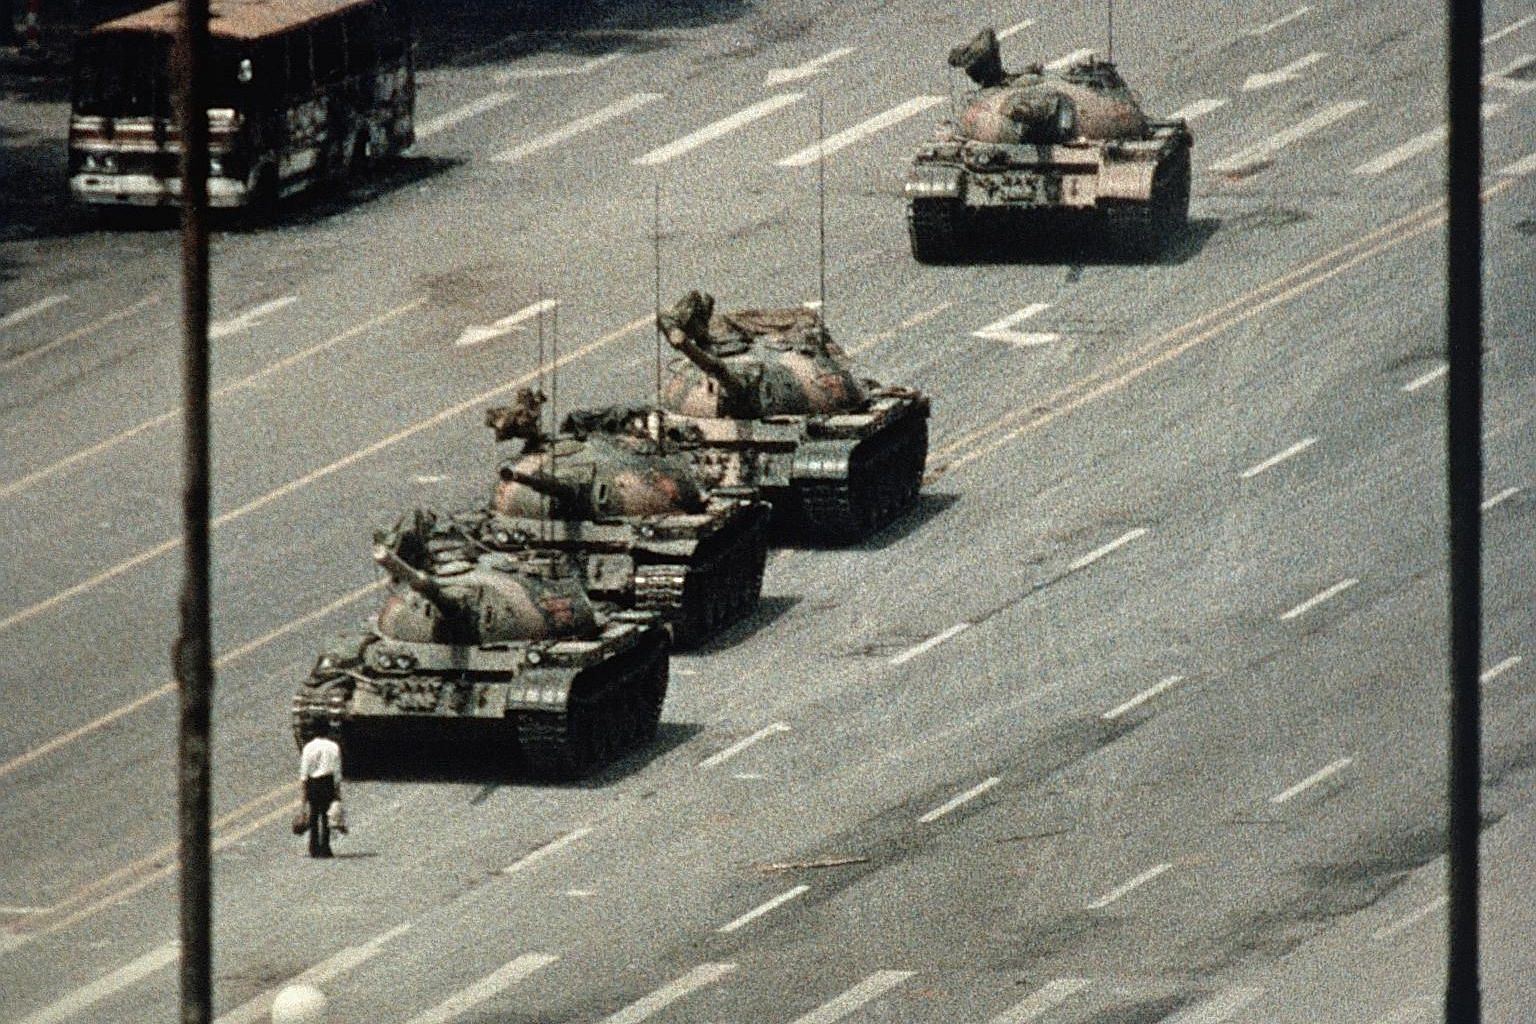 The iconic image of a lone unidentified man blocking a convoy of tanks during the Tiananmen Square protests in Beijing on June 5, 1989. American photojournalist Charlie Cole, who shot the image from the balcony of a hotel with a telephoto lens, has d